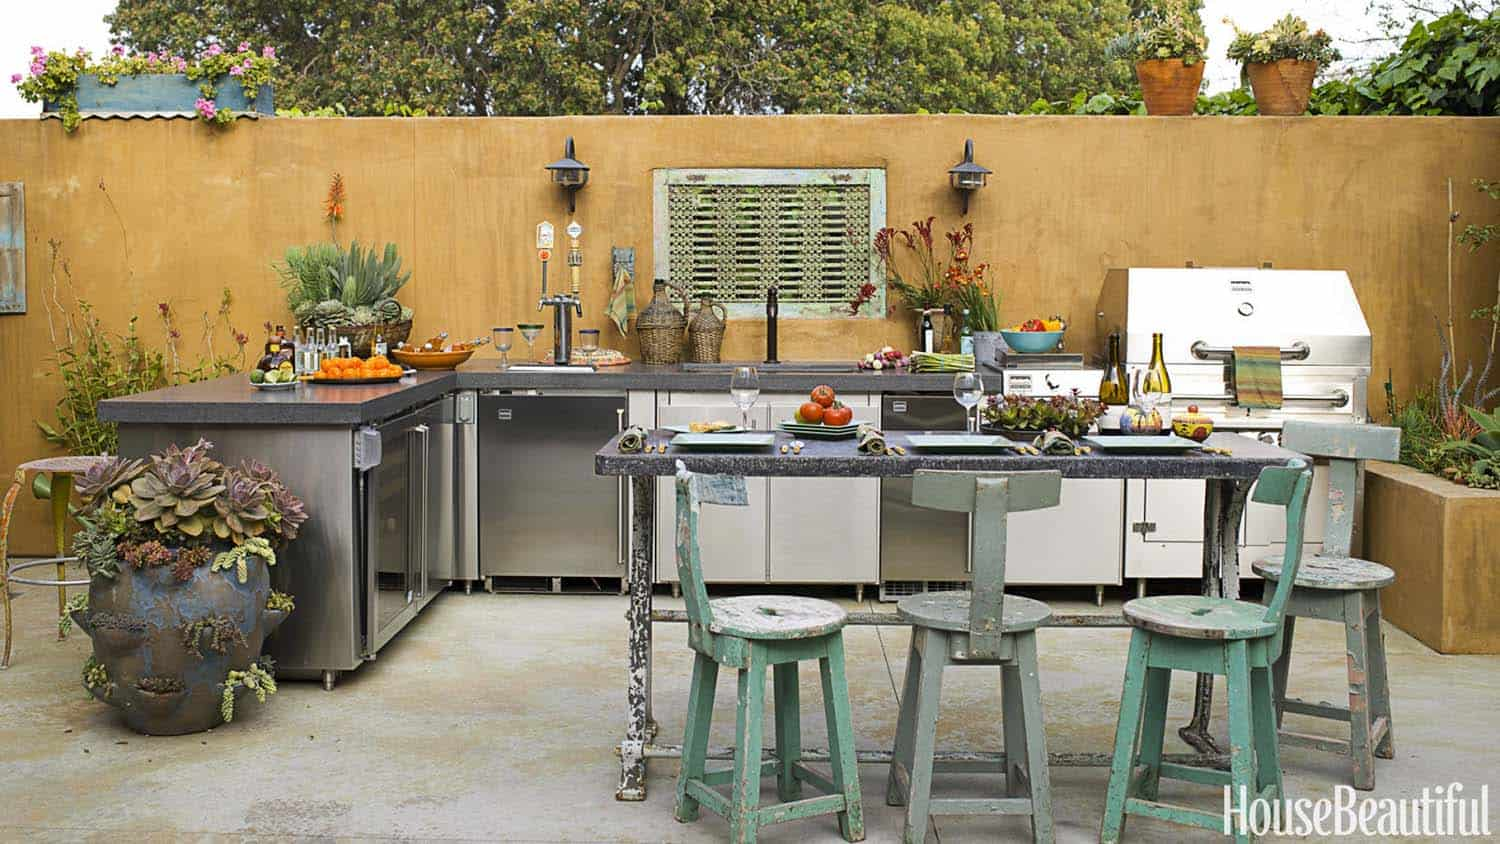 Outdoor Kitchens-Bars Entertaining-24-1 Kindesign.jpg